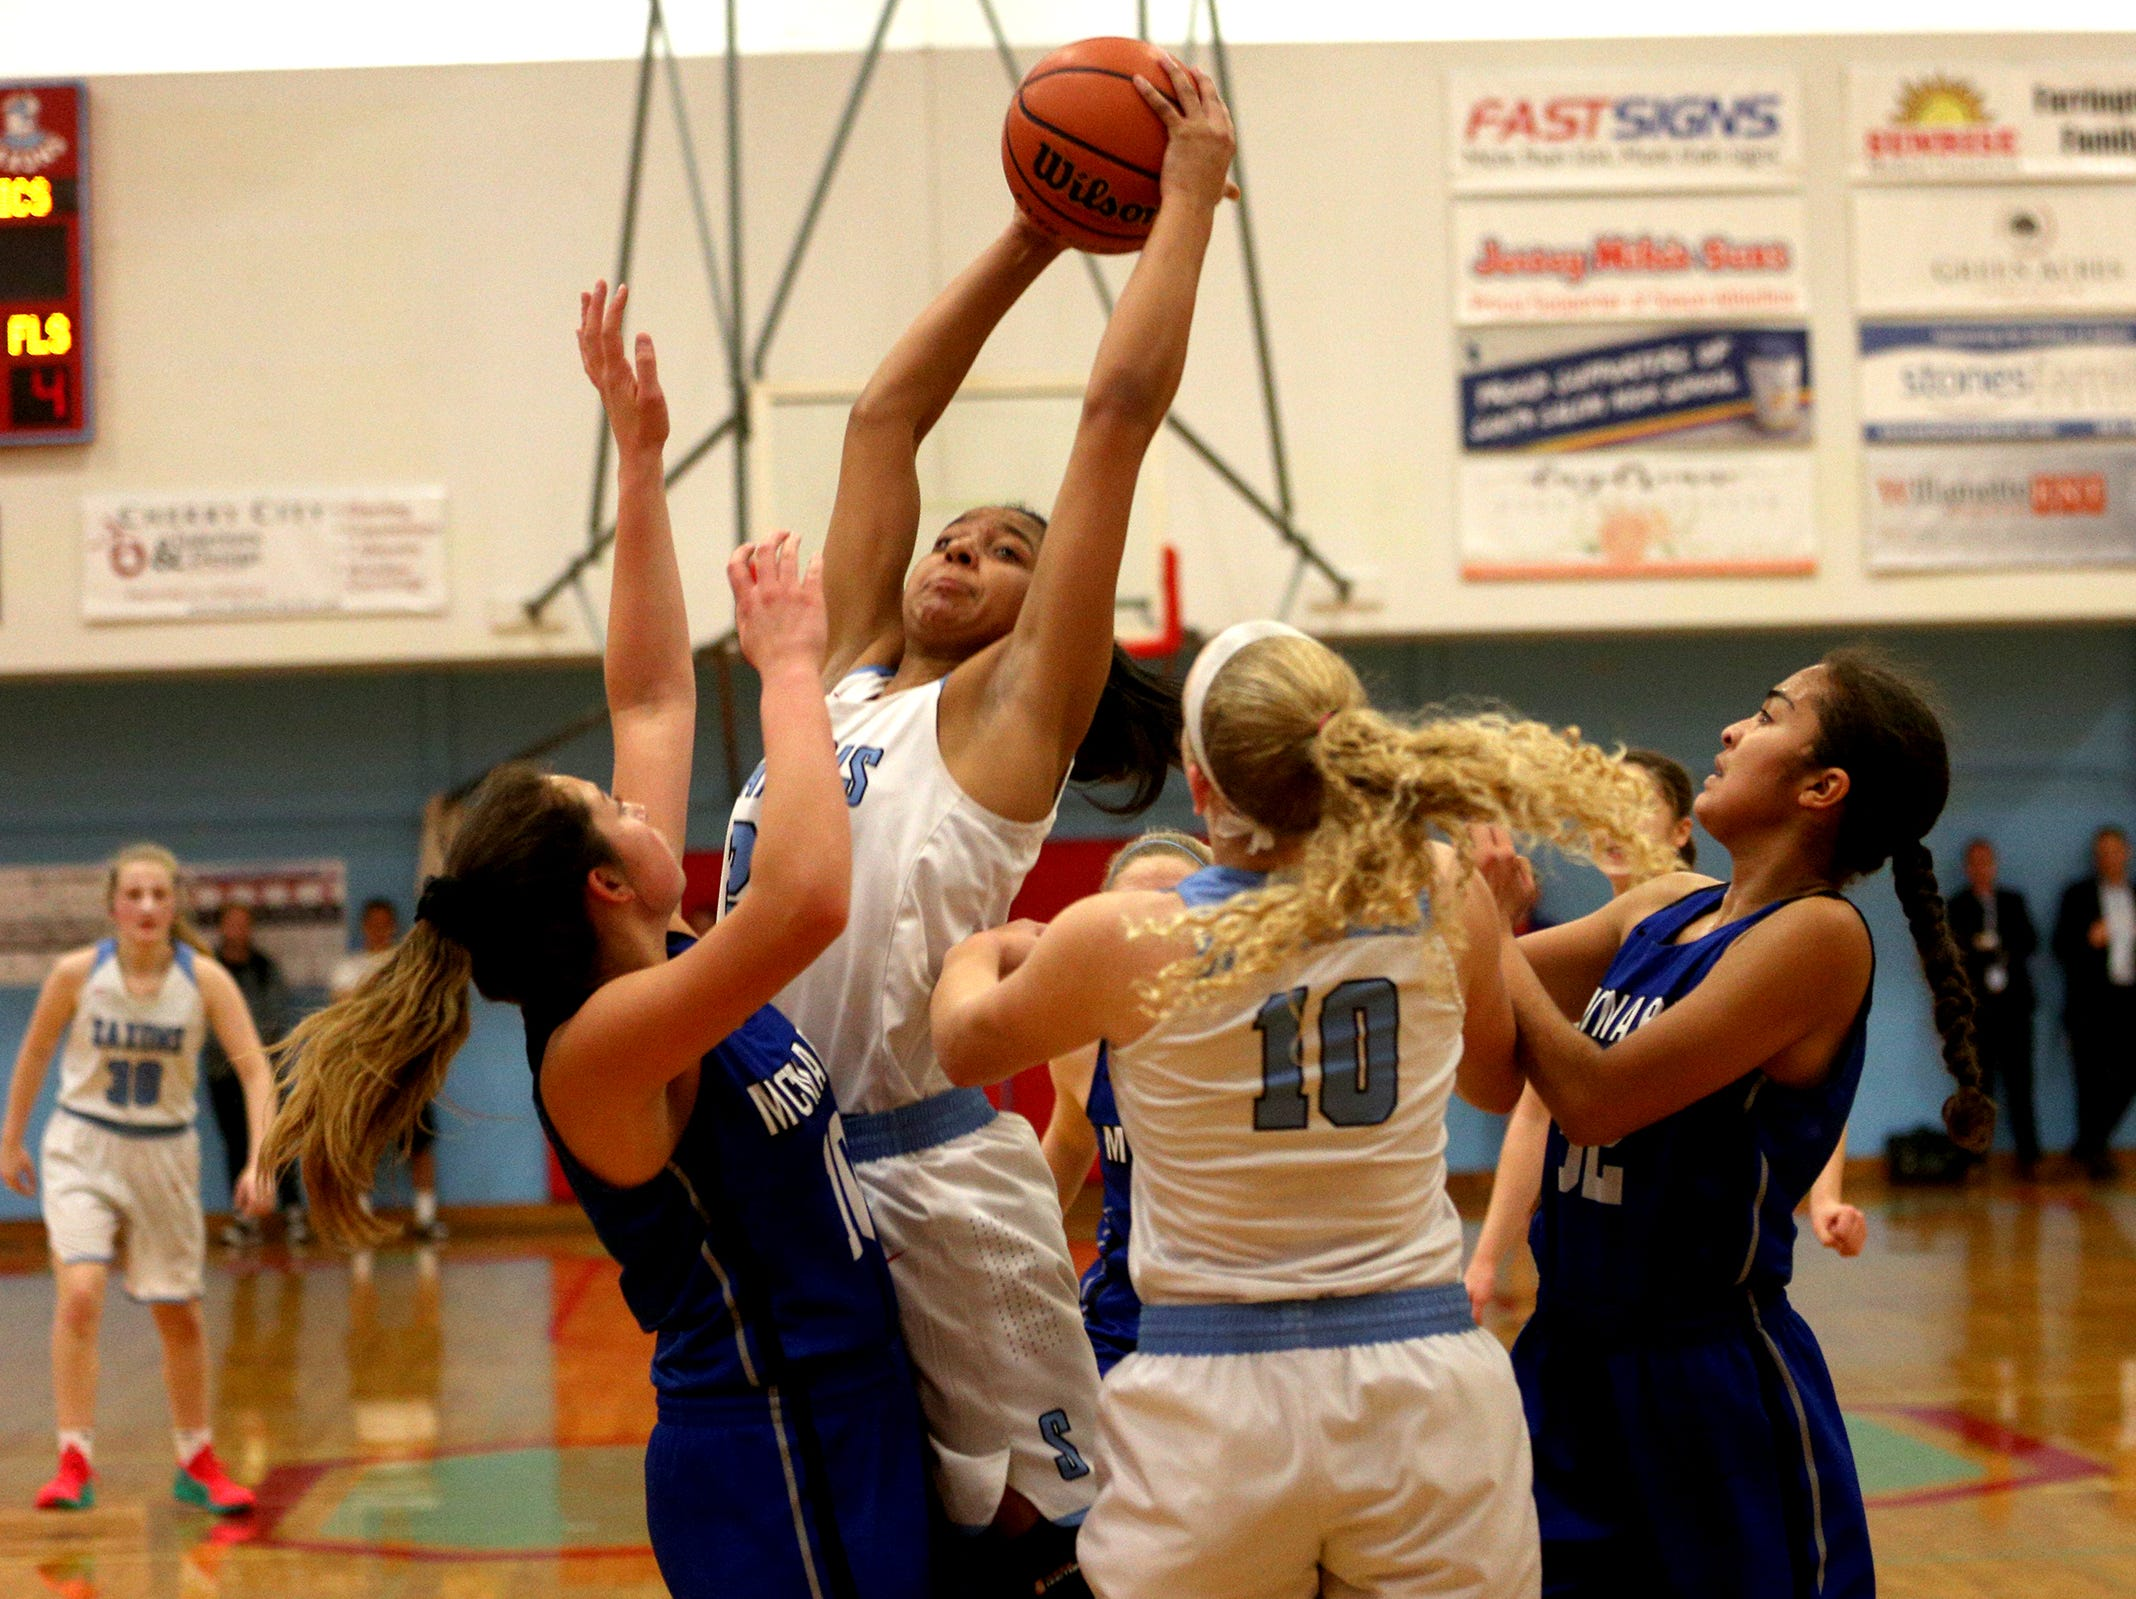 South Salem's Victoria Stafford (23) rebounds during the South Salem High School girls basketball game against McNary High School in Salem on Thursday, Jan. 31, 2019.